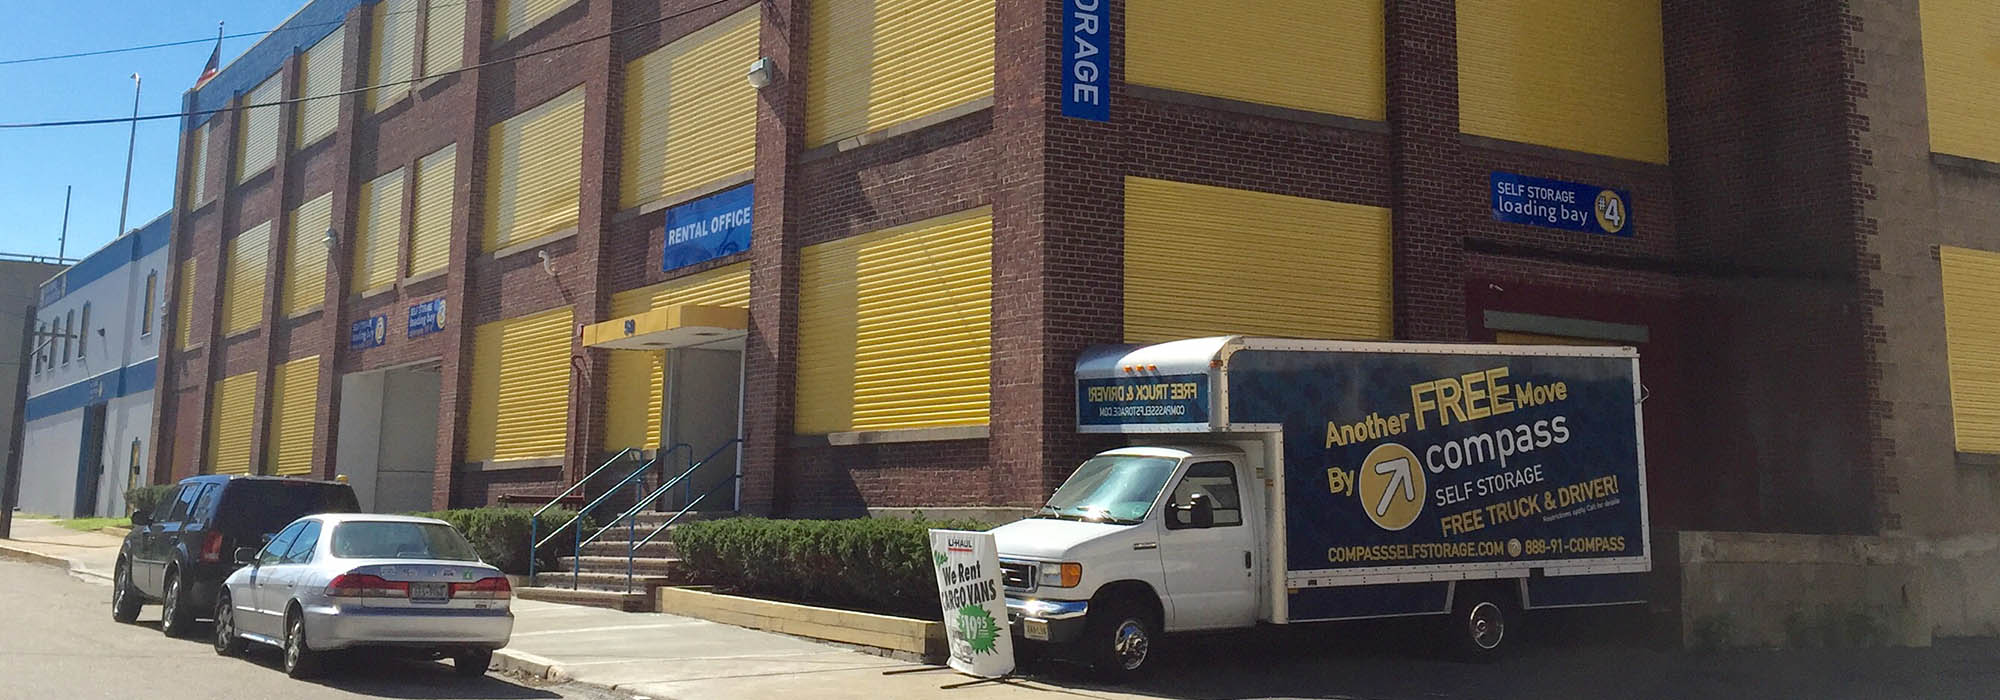 Self storage in Bloomfield NJ